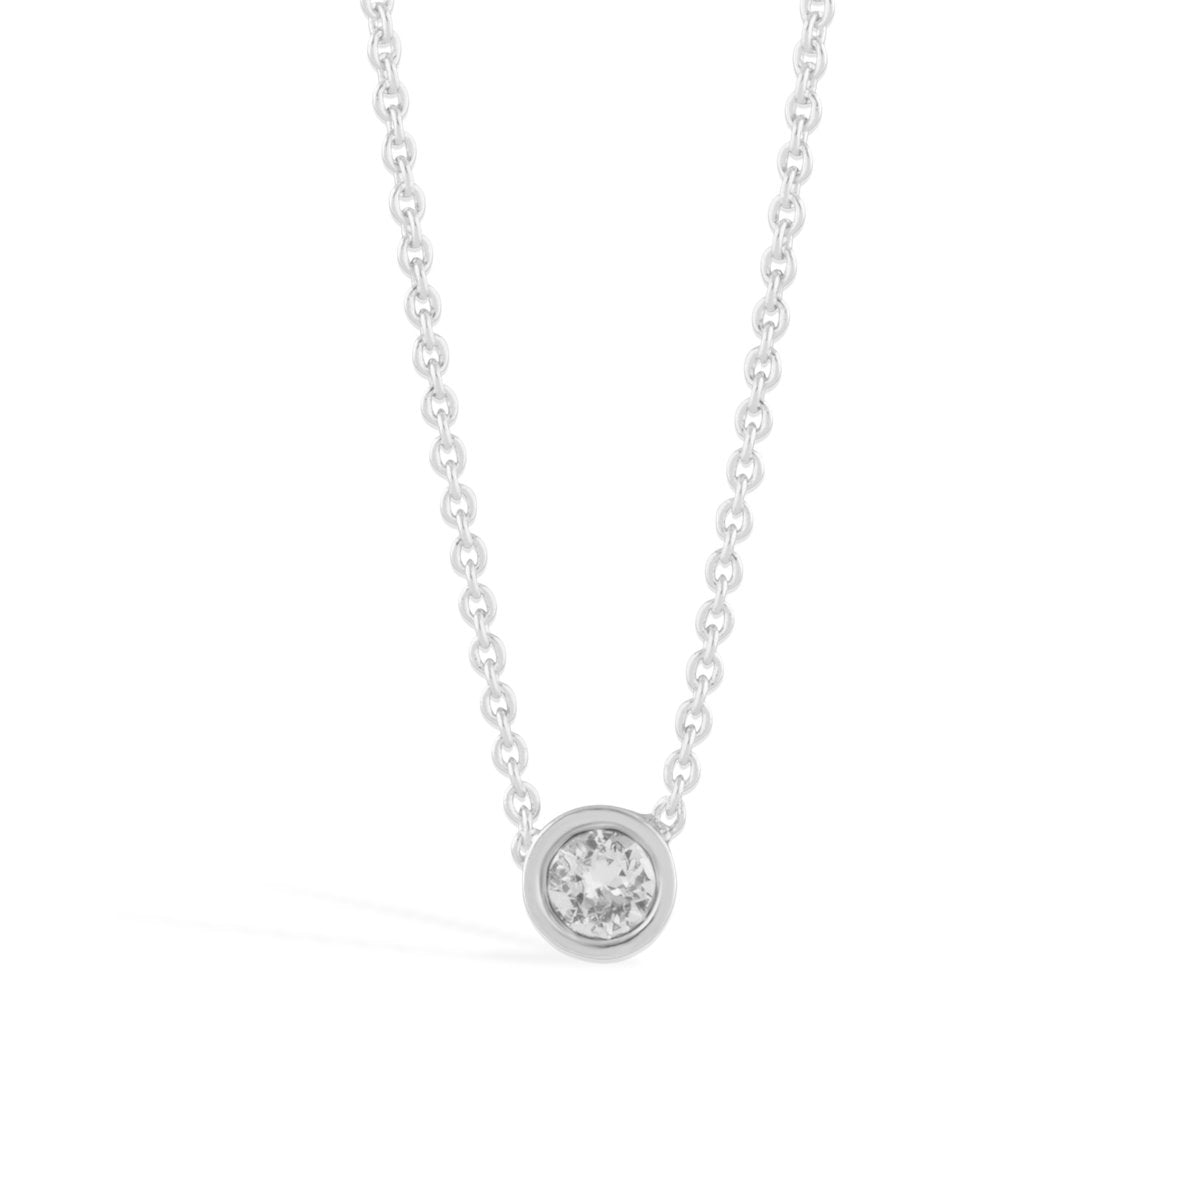 Denia Necklace forevercrystals Silver